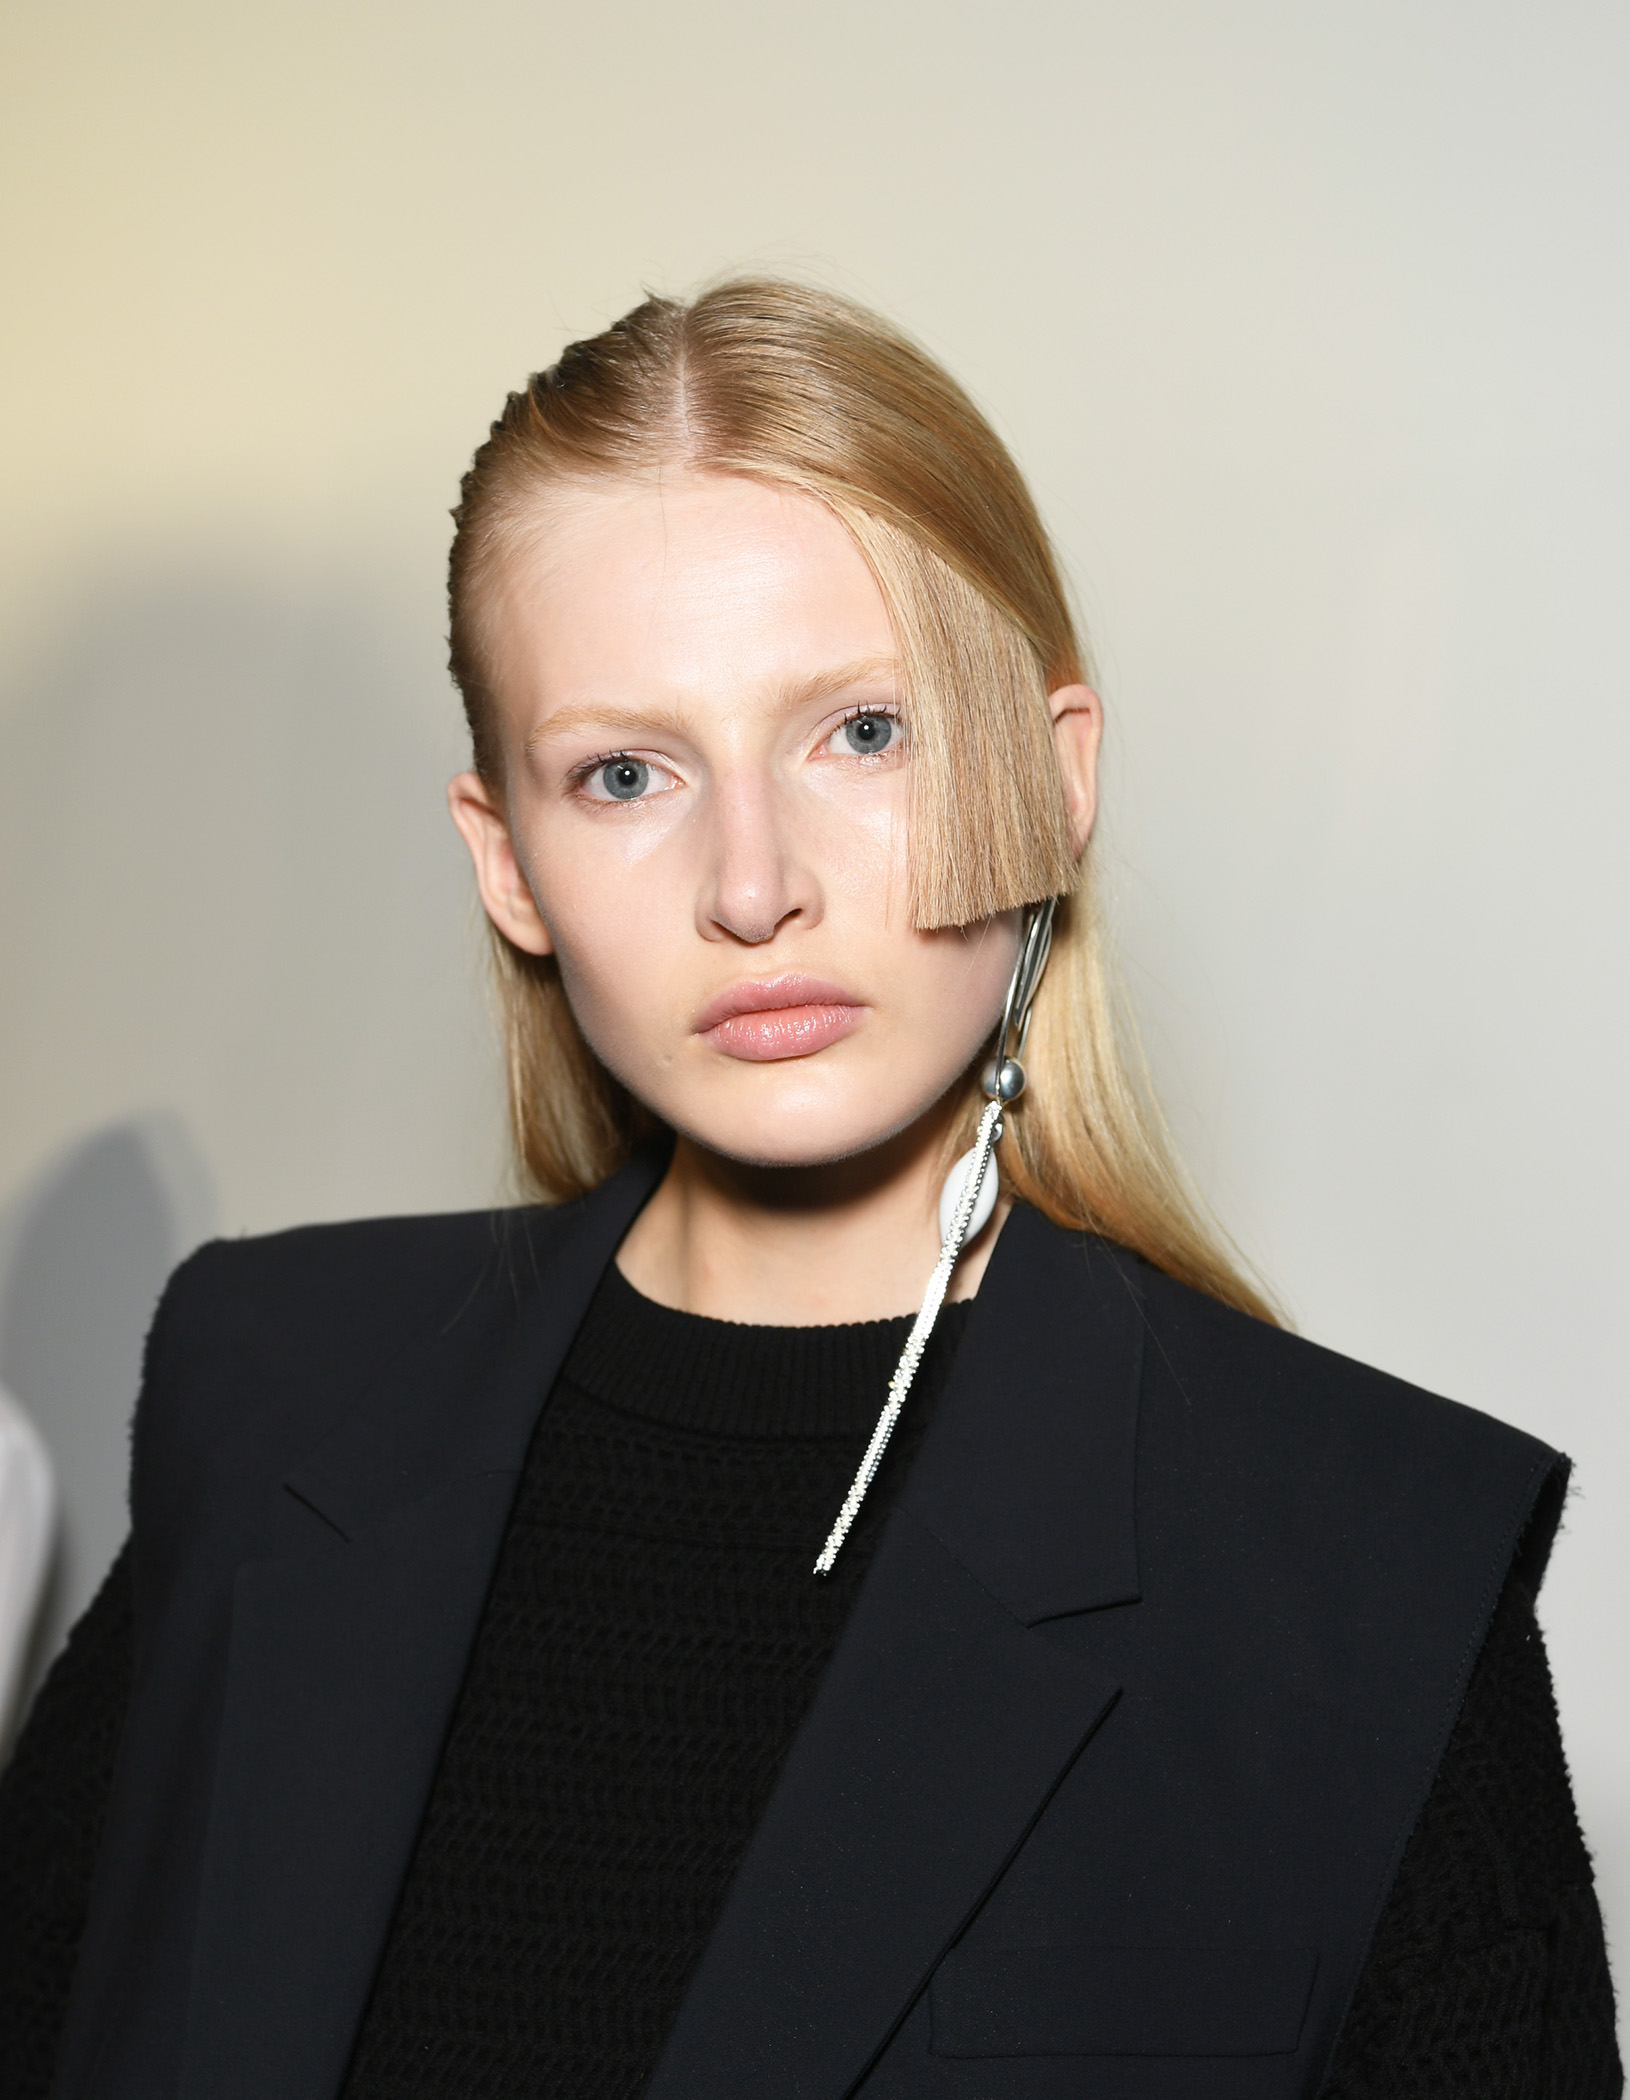 2019 year style- Beauty backstage 3 1 phillip lim spring